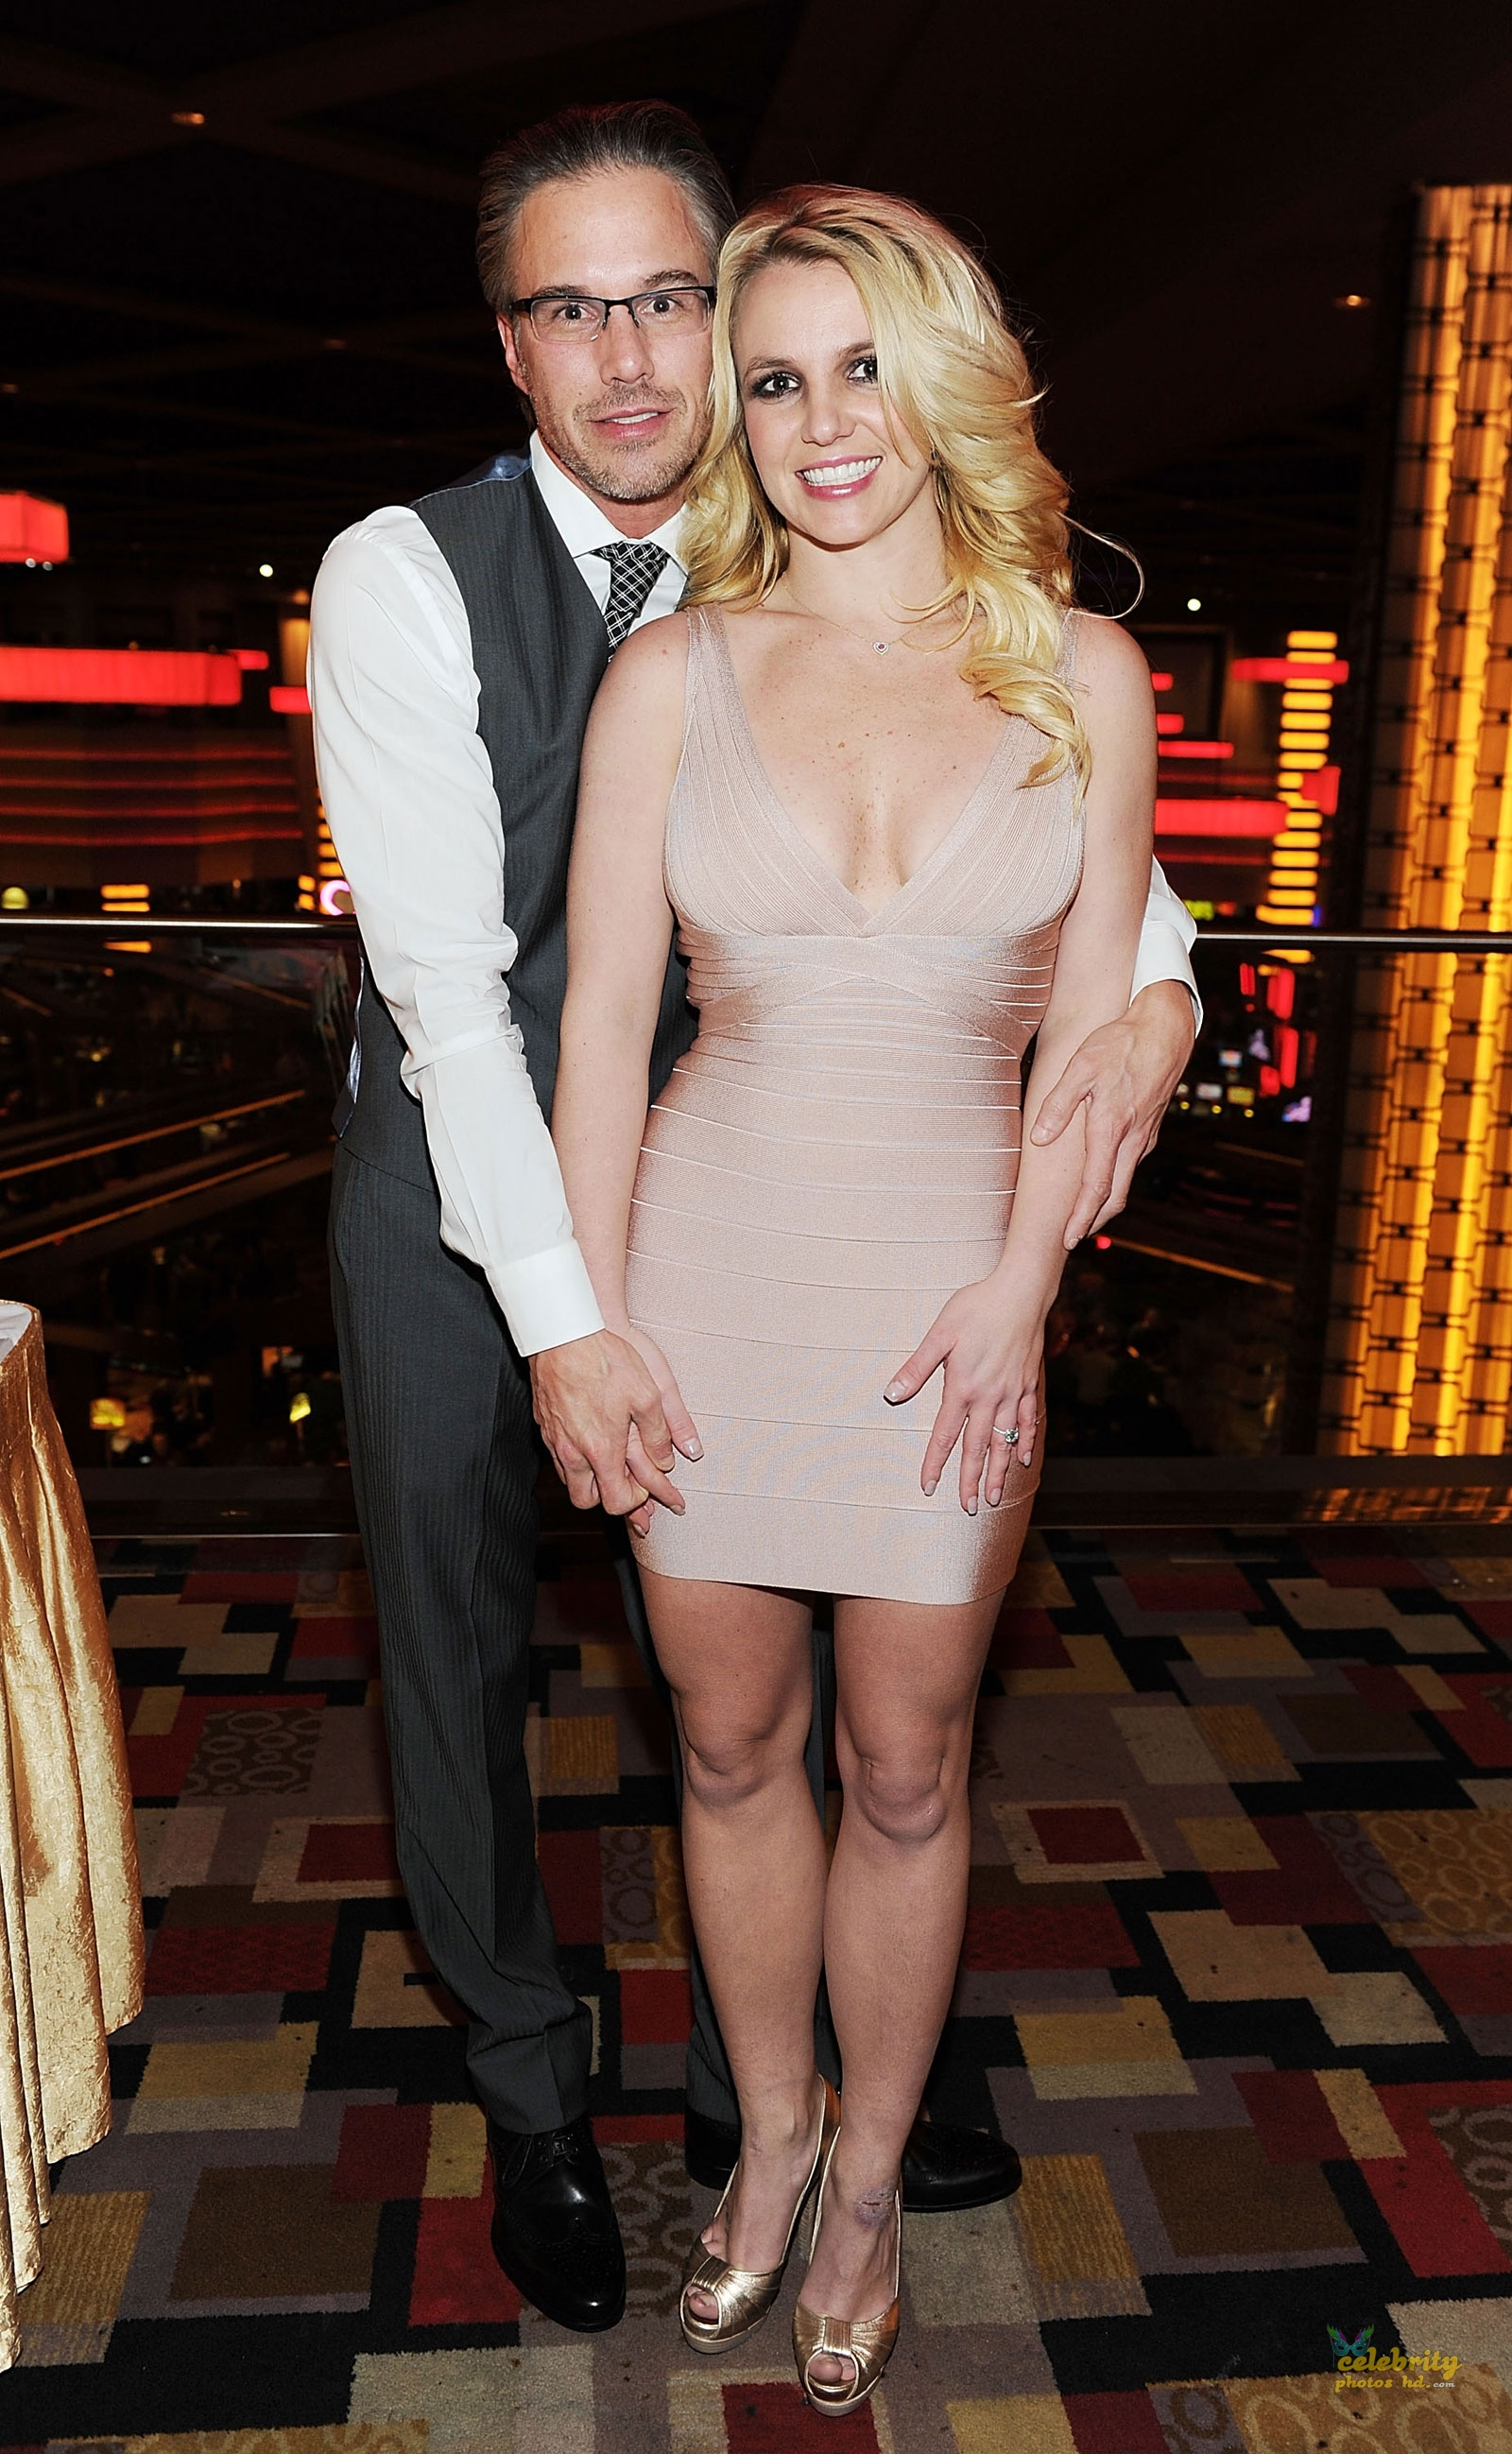 Britney Spears Celebrates Engagement at Planet Hollywood in Las Vegas(2)